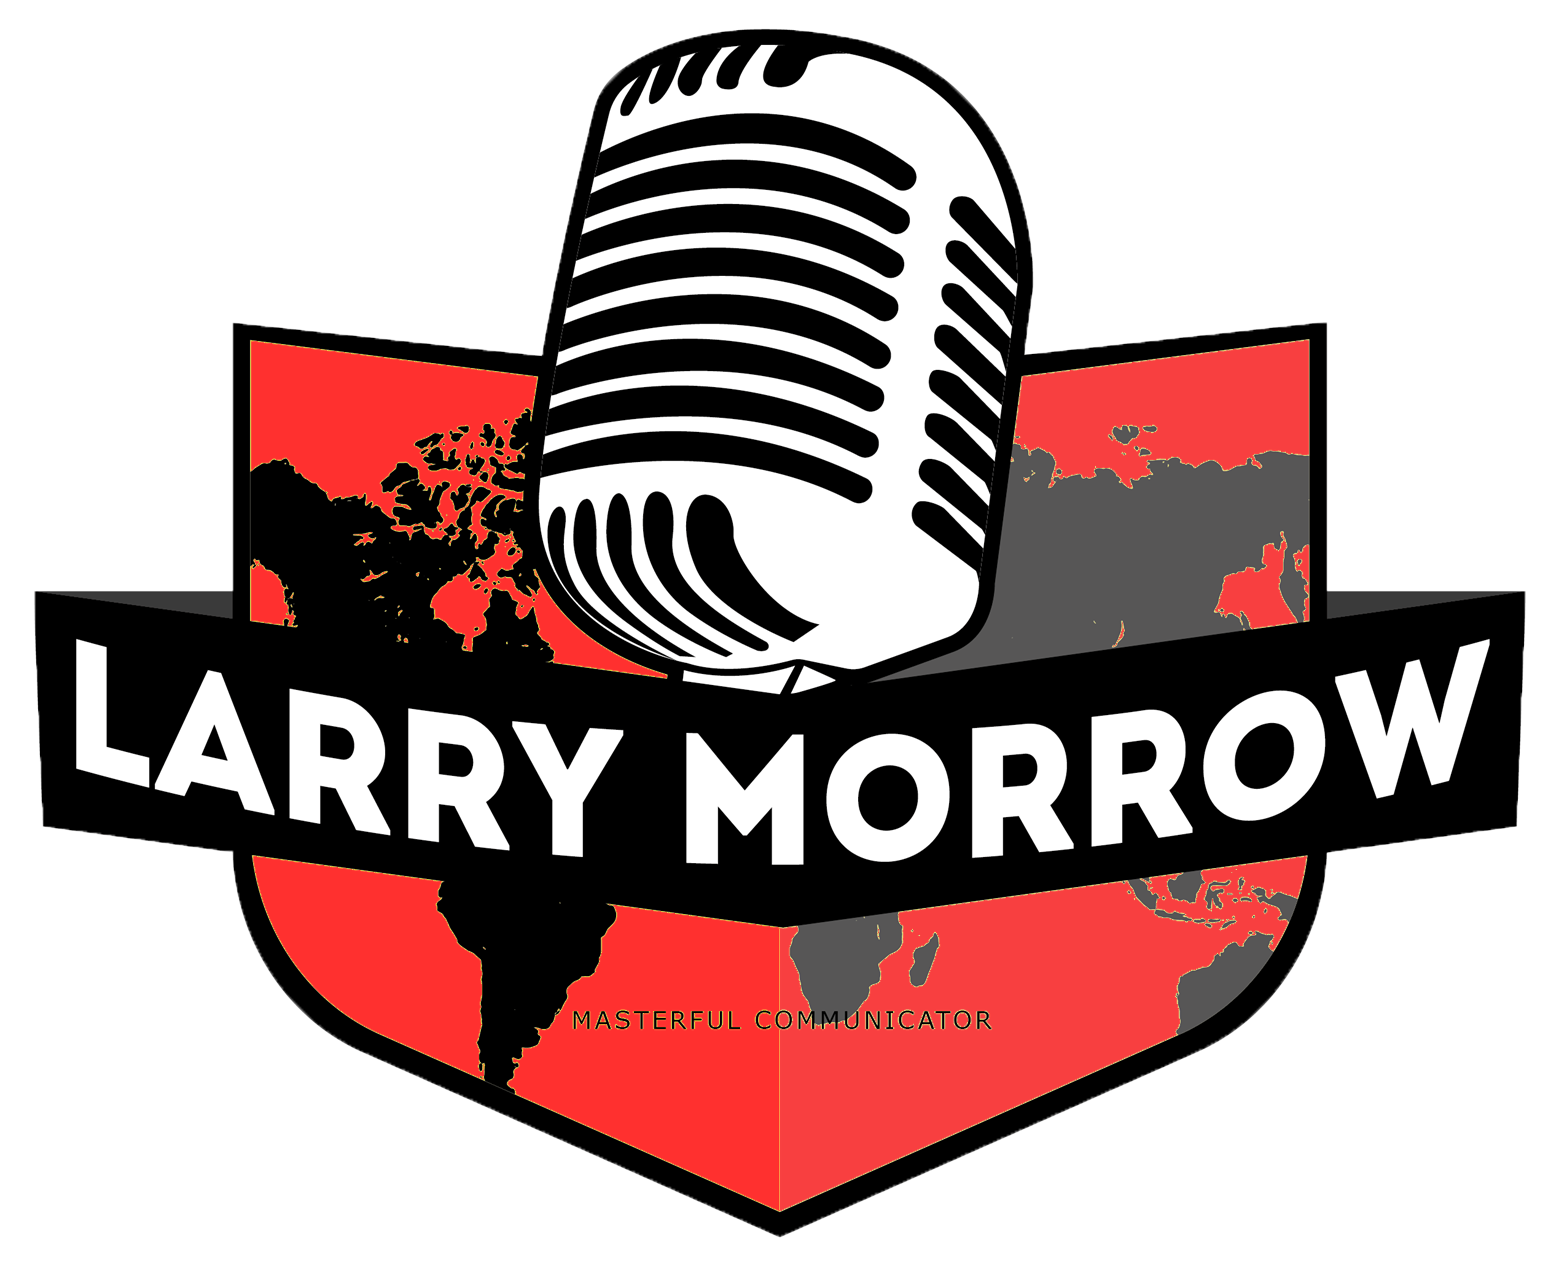 Larry Morrow